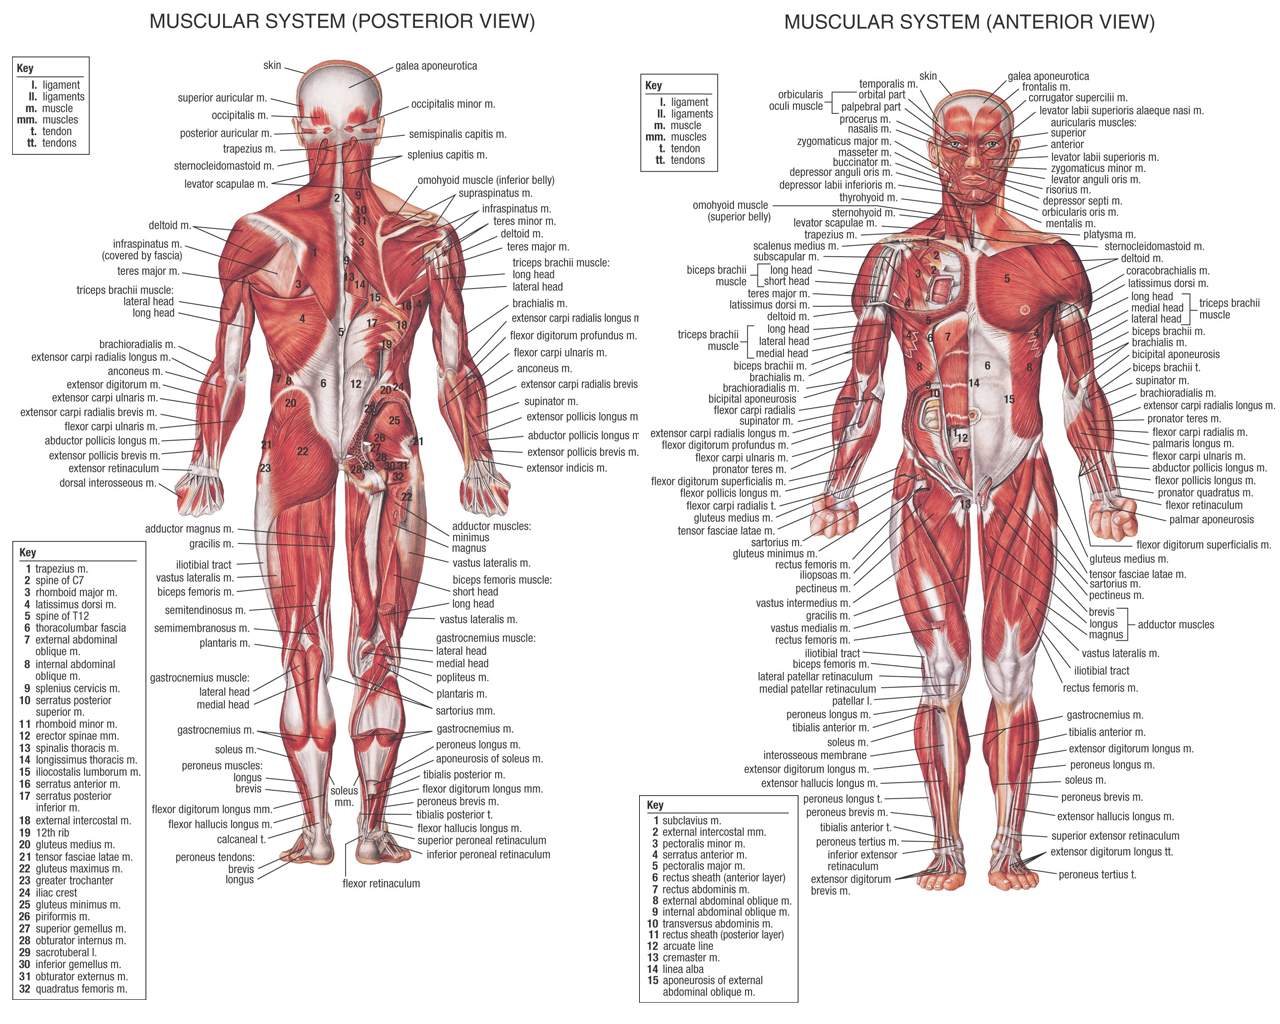 human muscle anatomy – how many muscles do you know of, Cephalic Vein